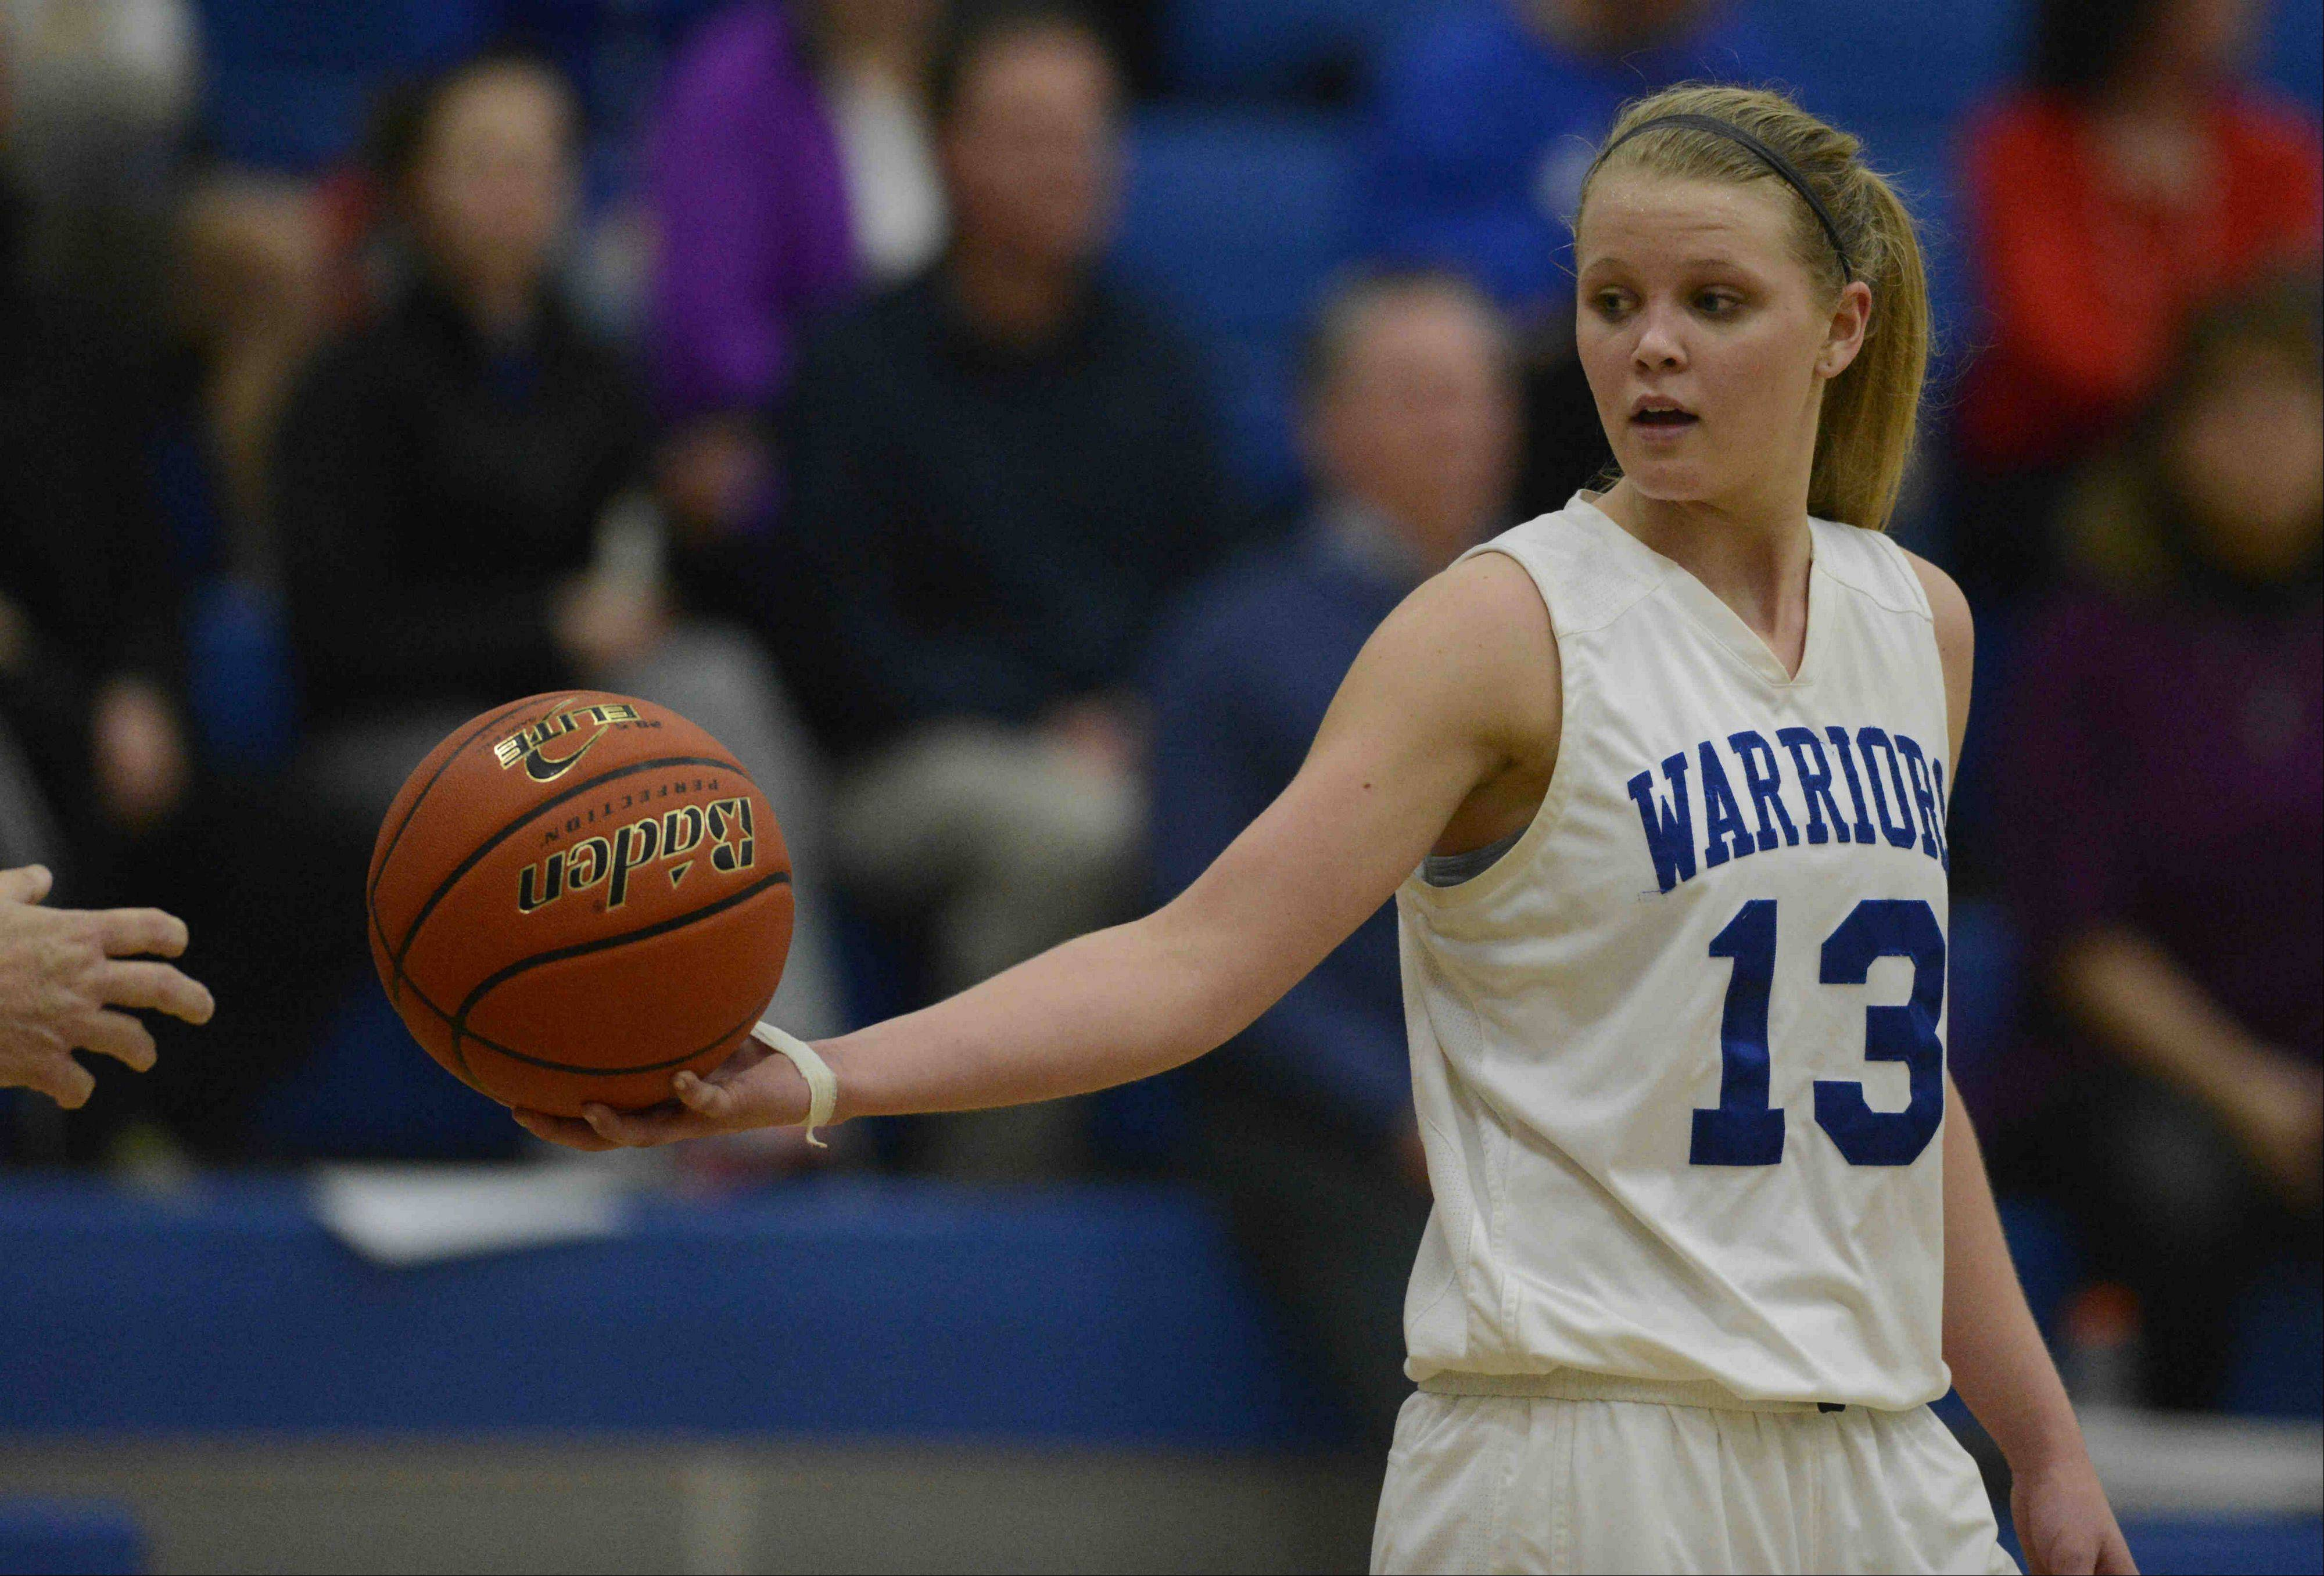 Junior McKaila Hays is one of the top players this season for Westminster Christian. The Warriors, who reached a sectional final last year, are the No. 1 seed in next week�s Class 1A Harvest Christian regional.